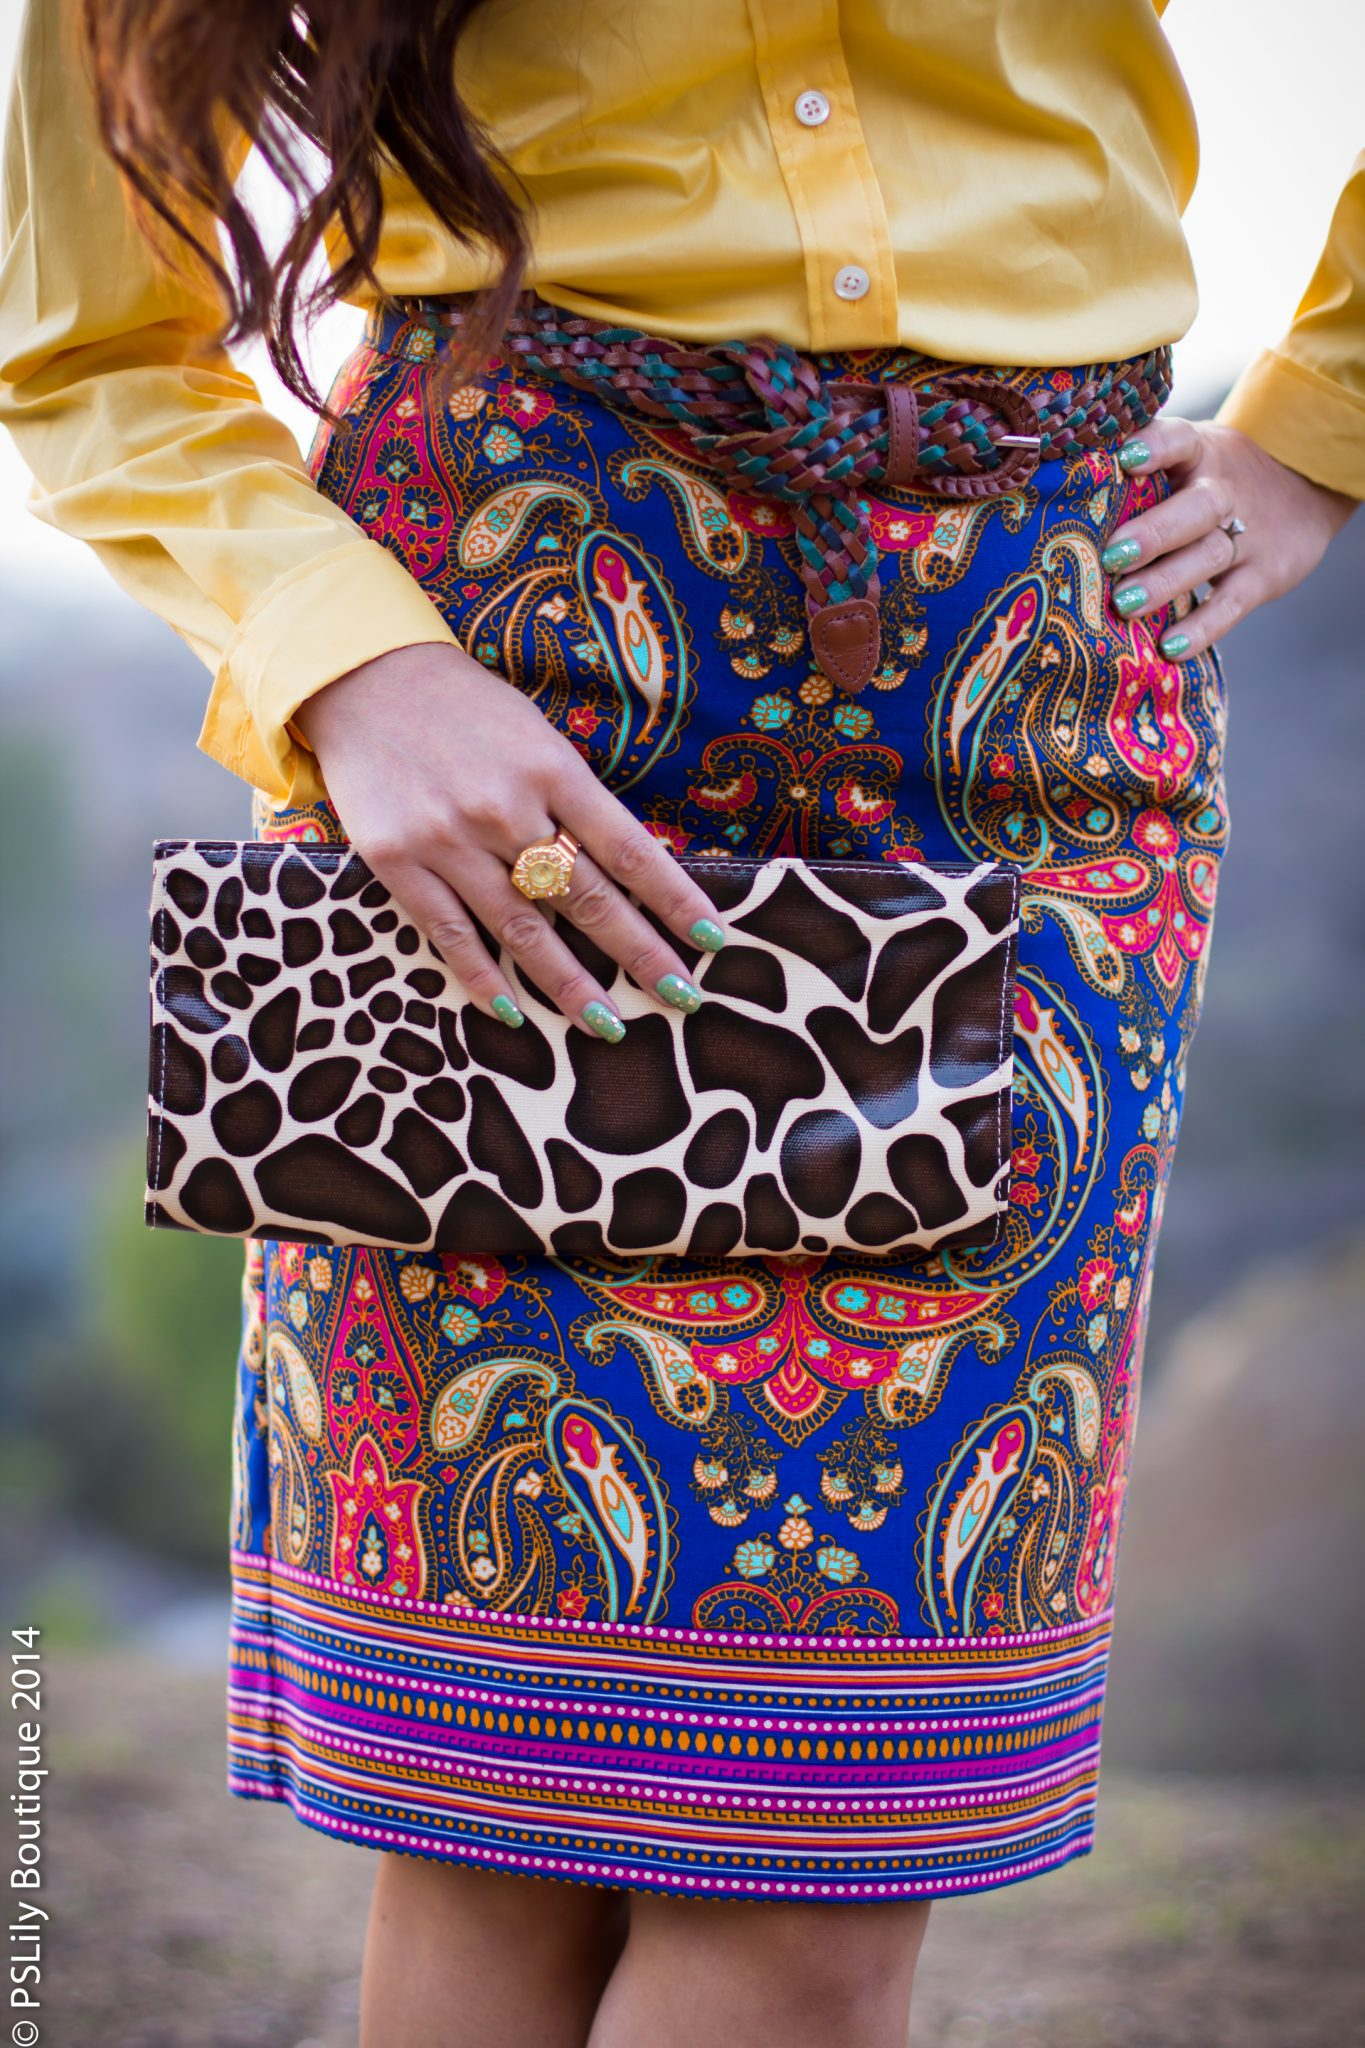 paisley pencil skirt, giraffe print clutch, watch ring